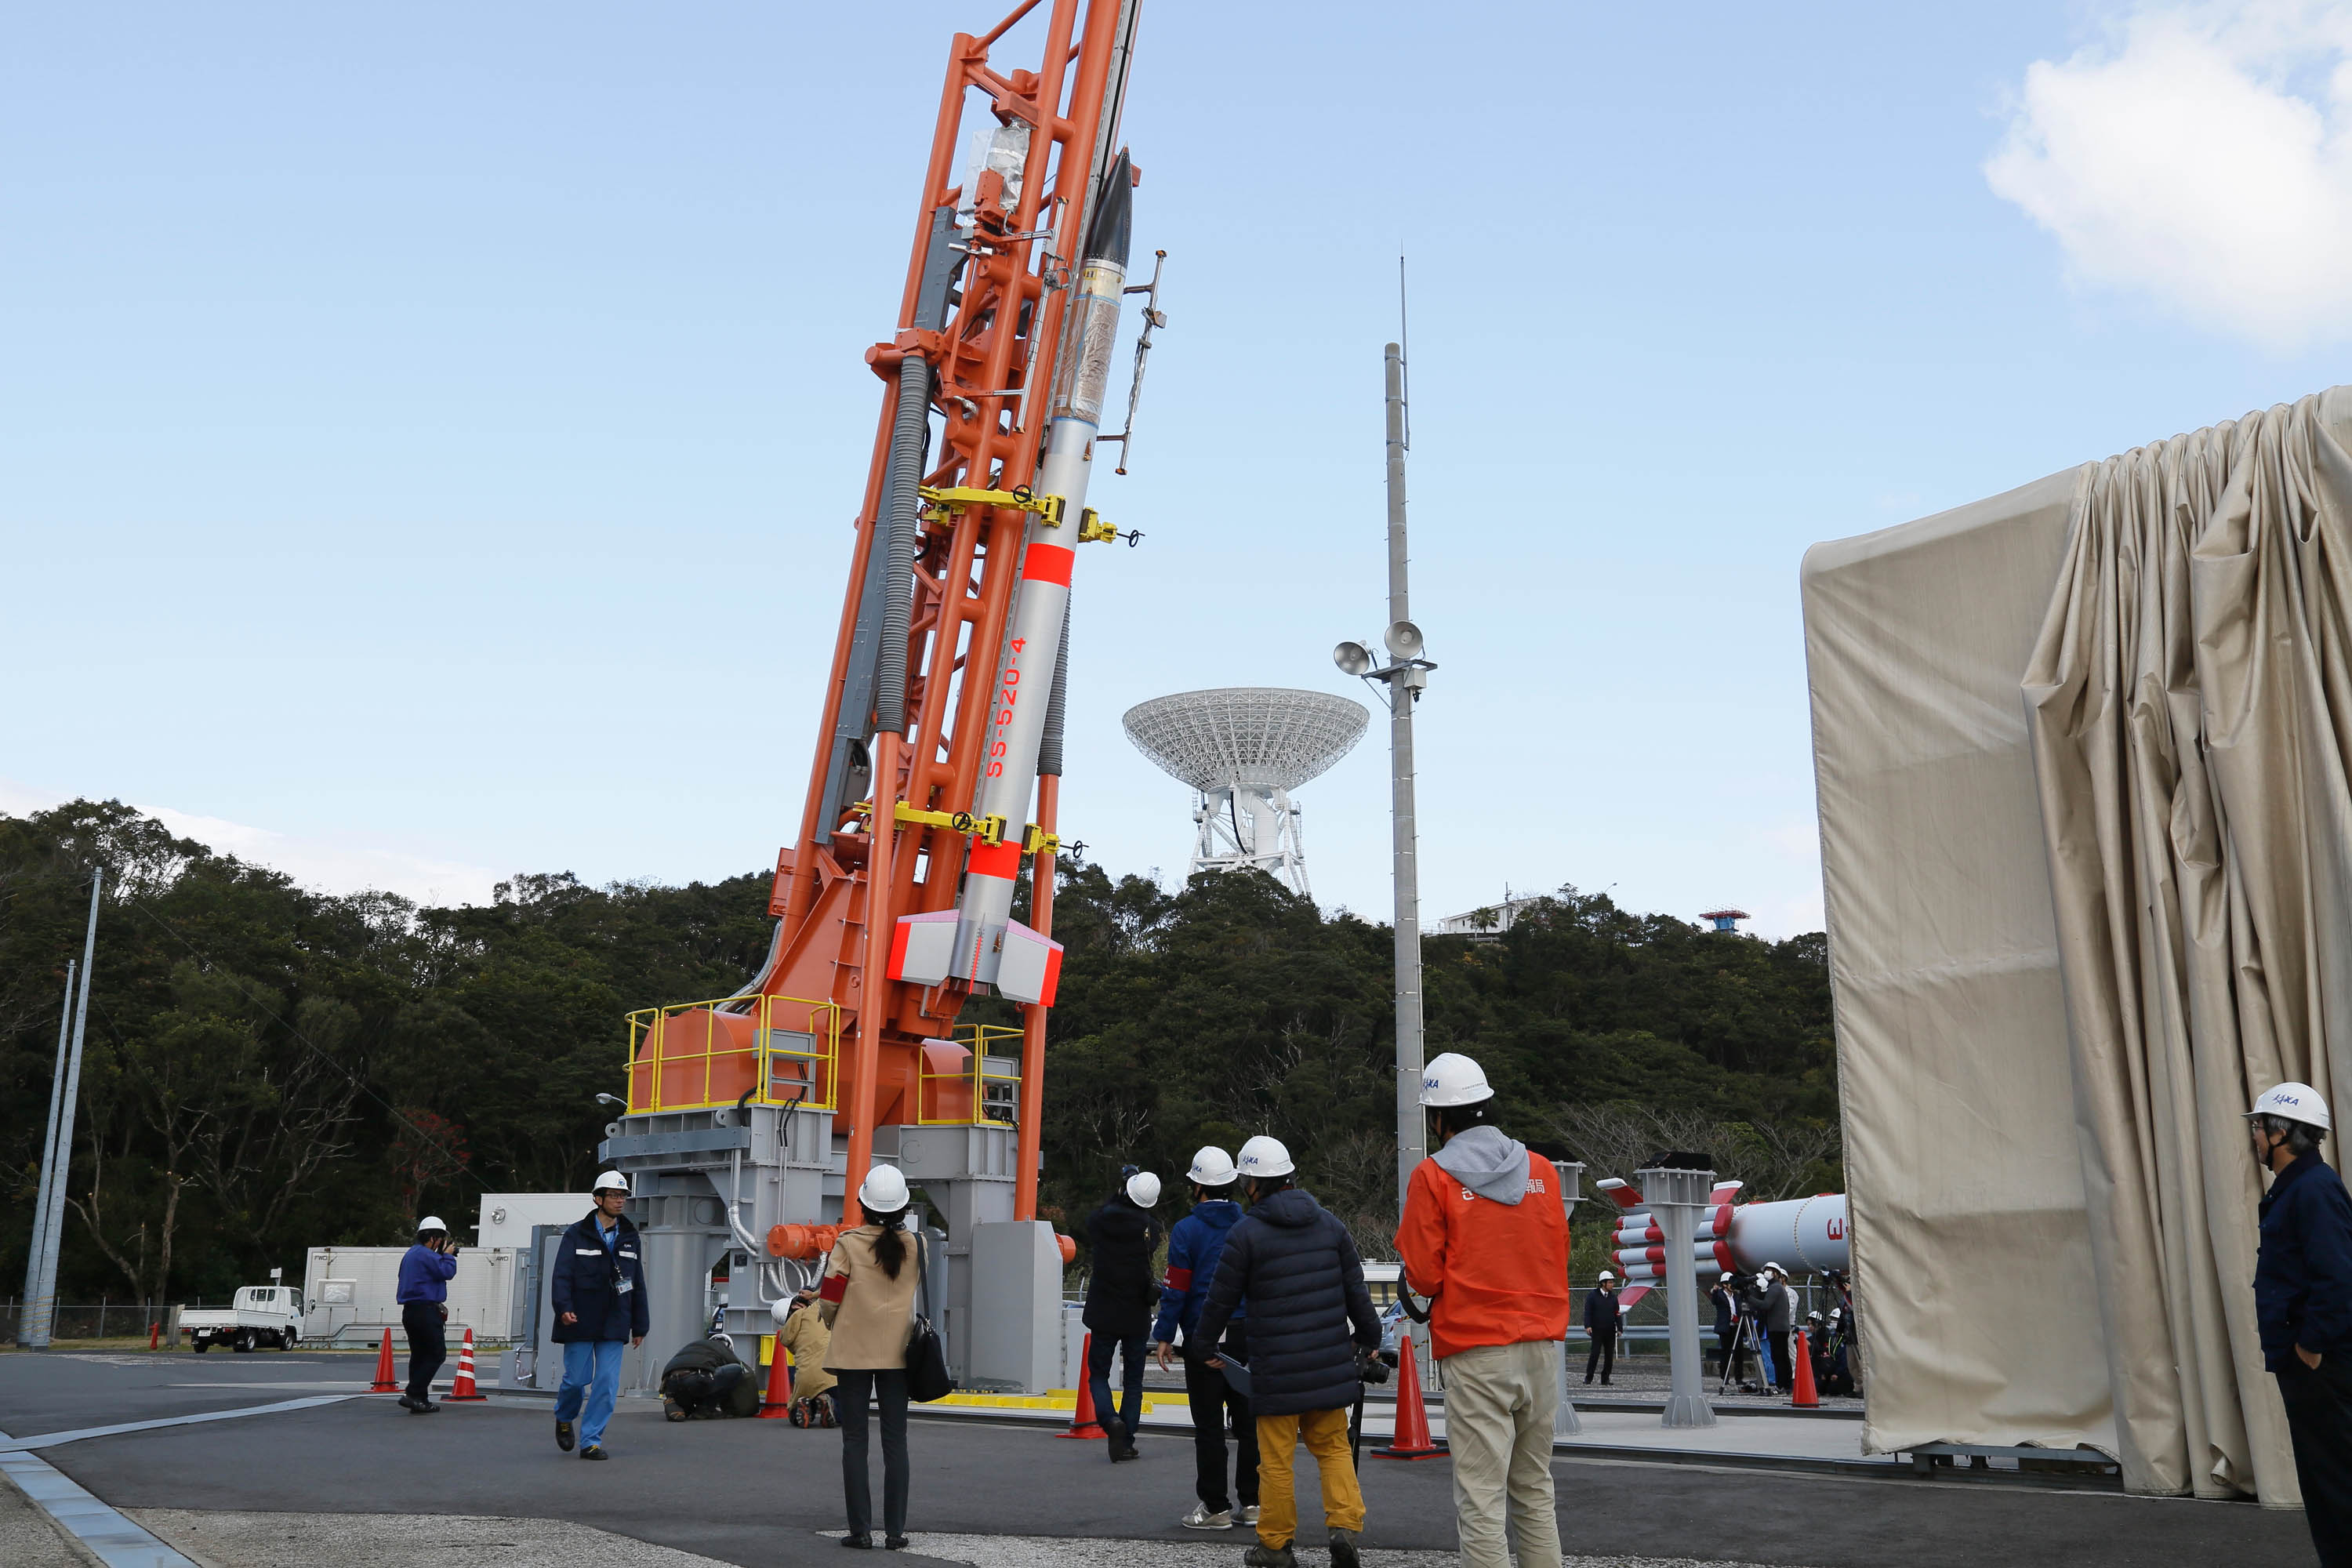 Japan's Small Experimental Rocket Fails to Launch Tiny Satellite